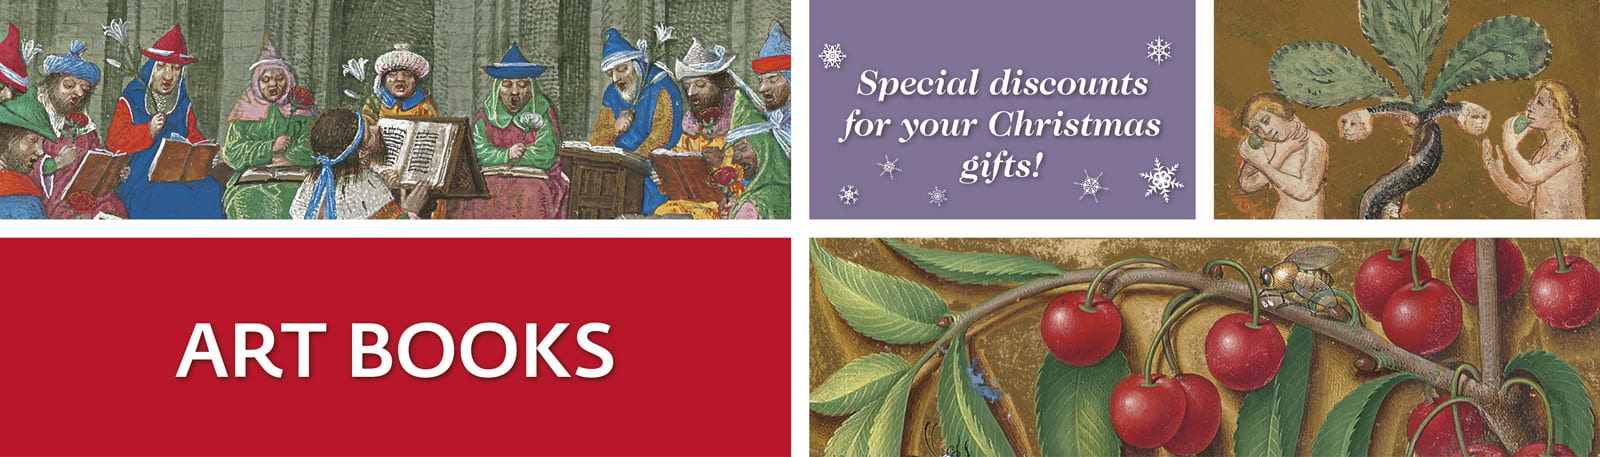 Art Books - Special discounts for your Christmas gifts!